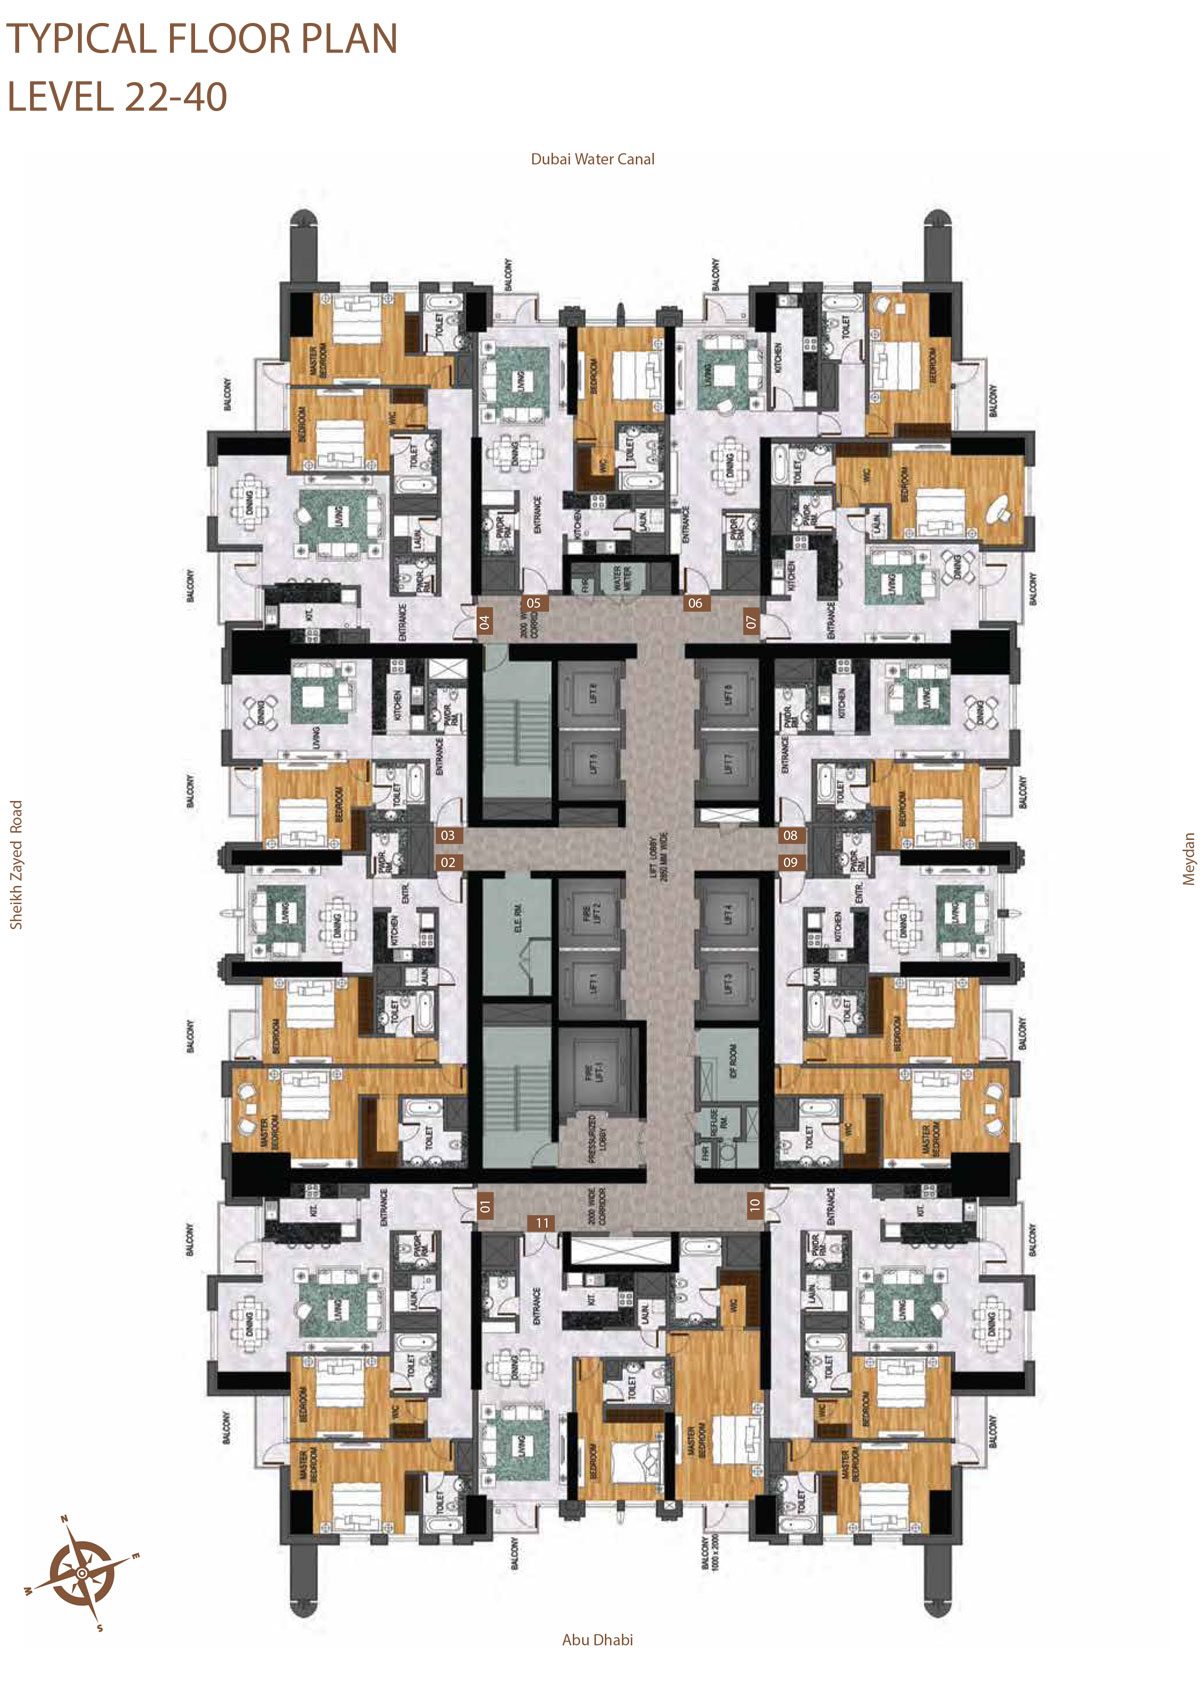 Level 22-40    Typical Floor Layout Plan